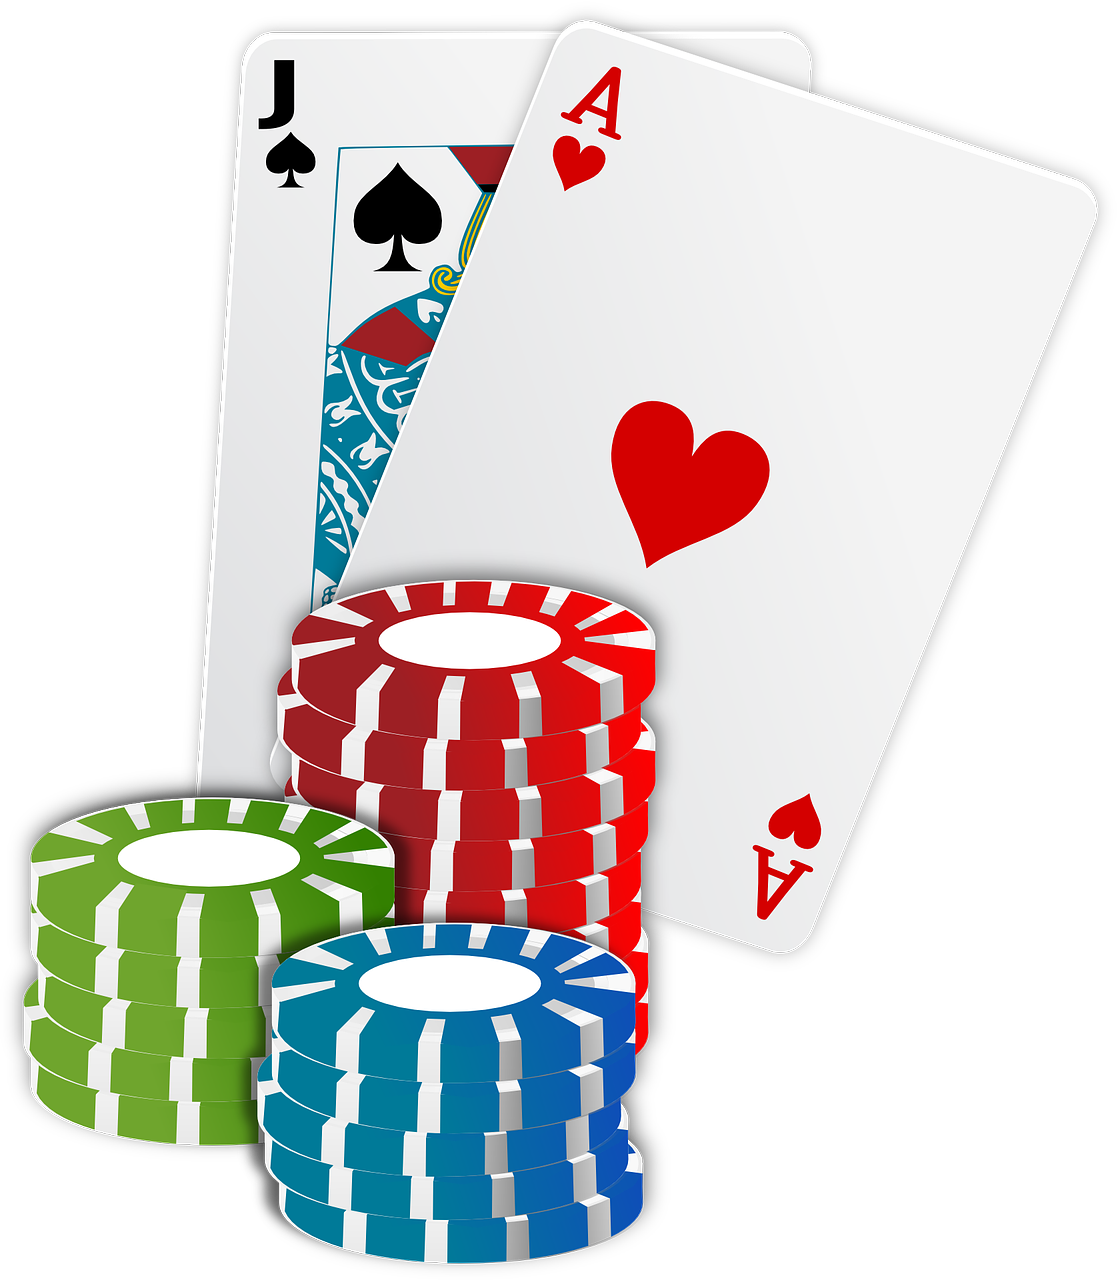 Casino clipart poker run. What is the best